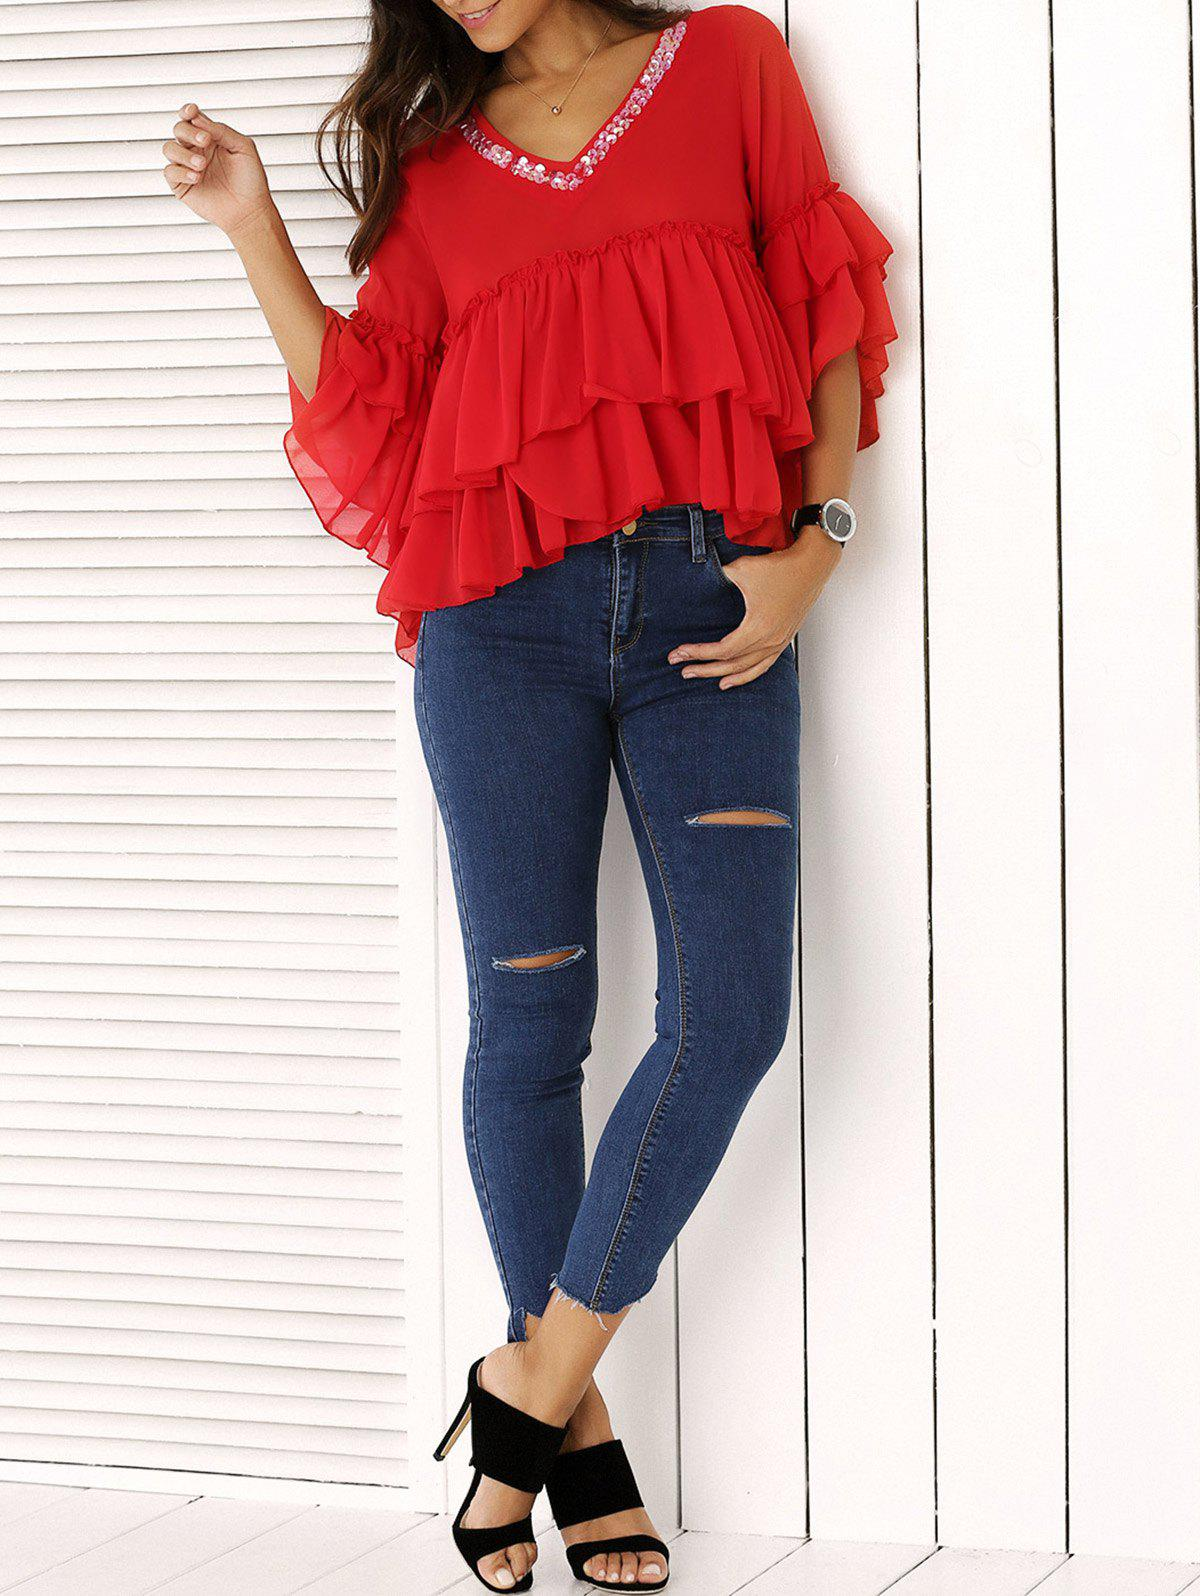 Fashion Frilly V Neck Cropped Blouse and Distressed Skinny Jeans